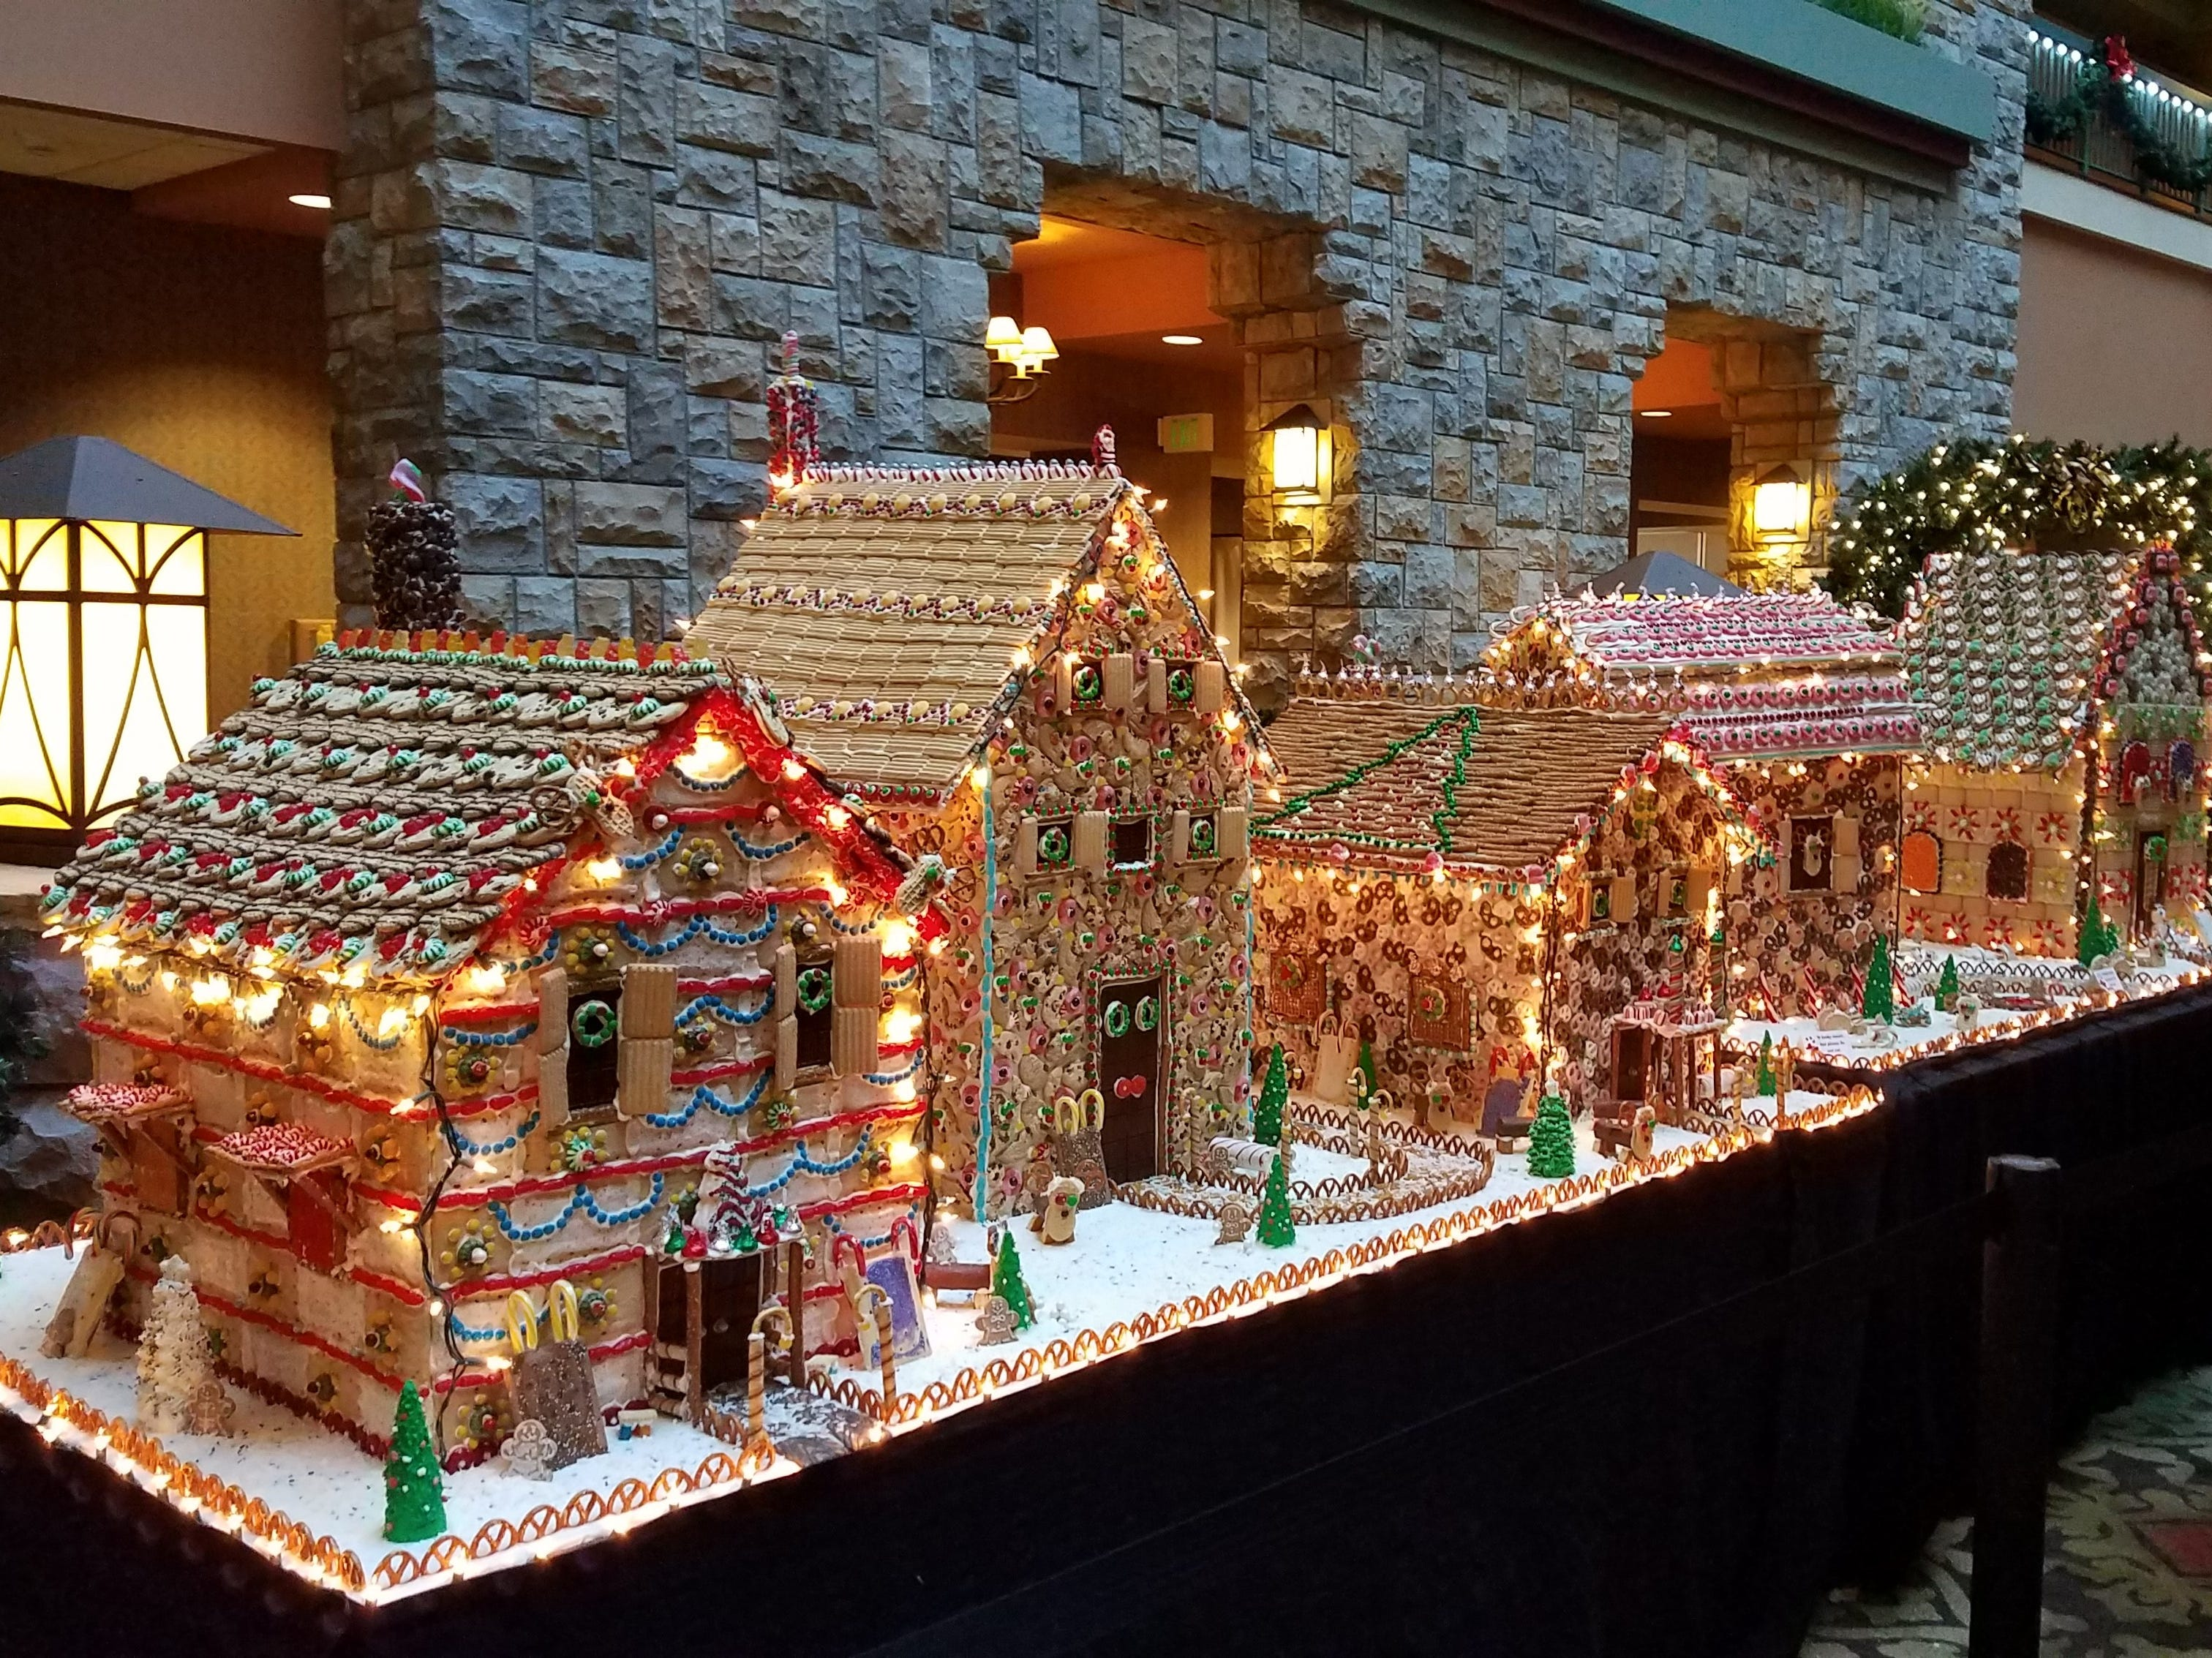 The gingerbread village has been part of Branson's Ozark Mountain Christmas for years.